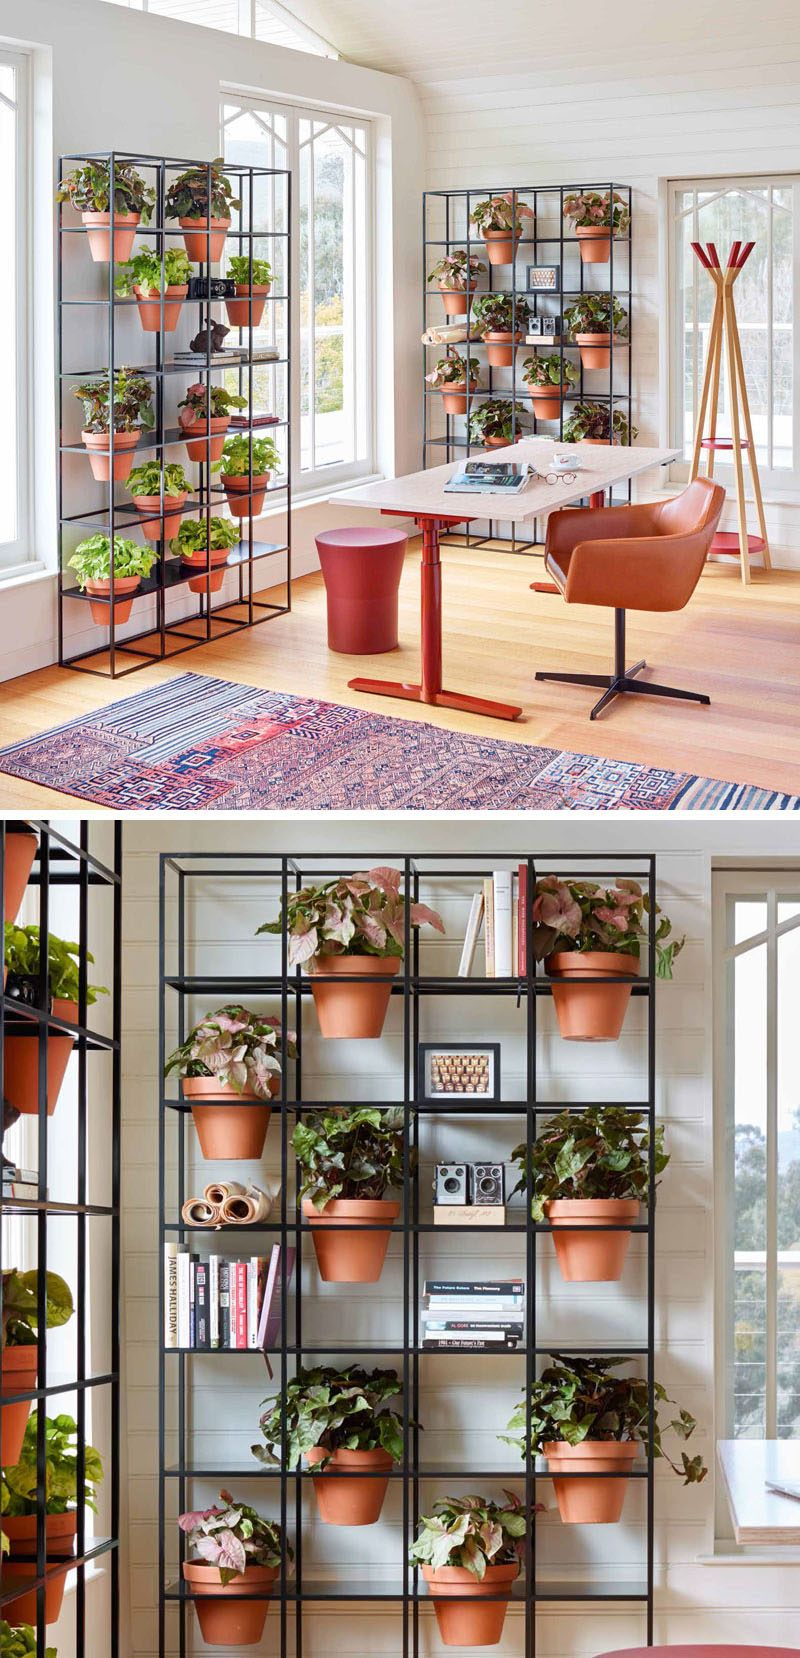 An easy way to create a vertical grid garden in your home bloomies